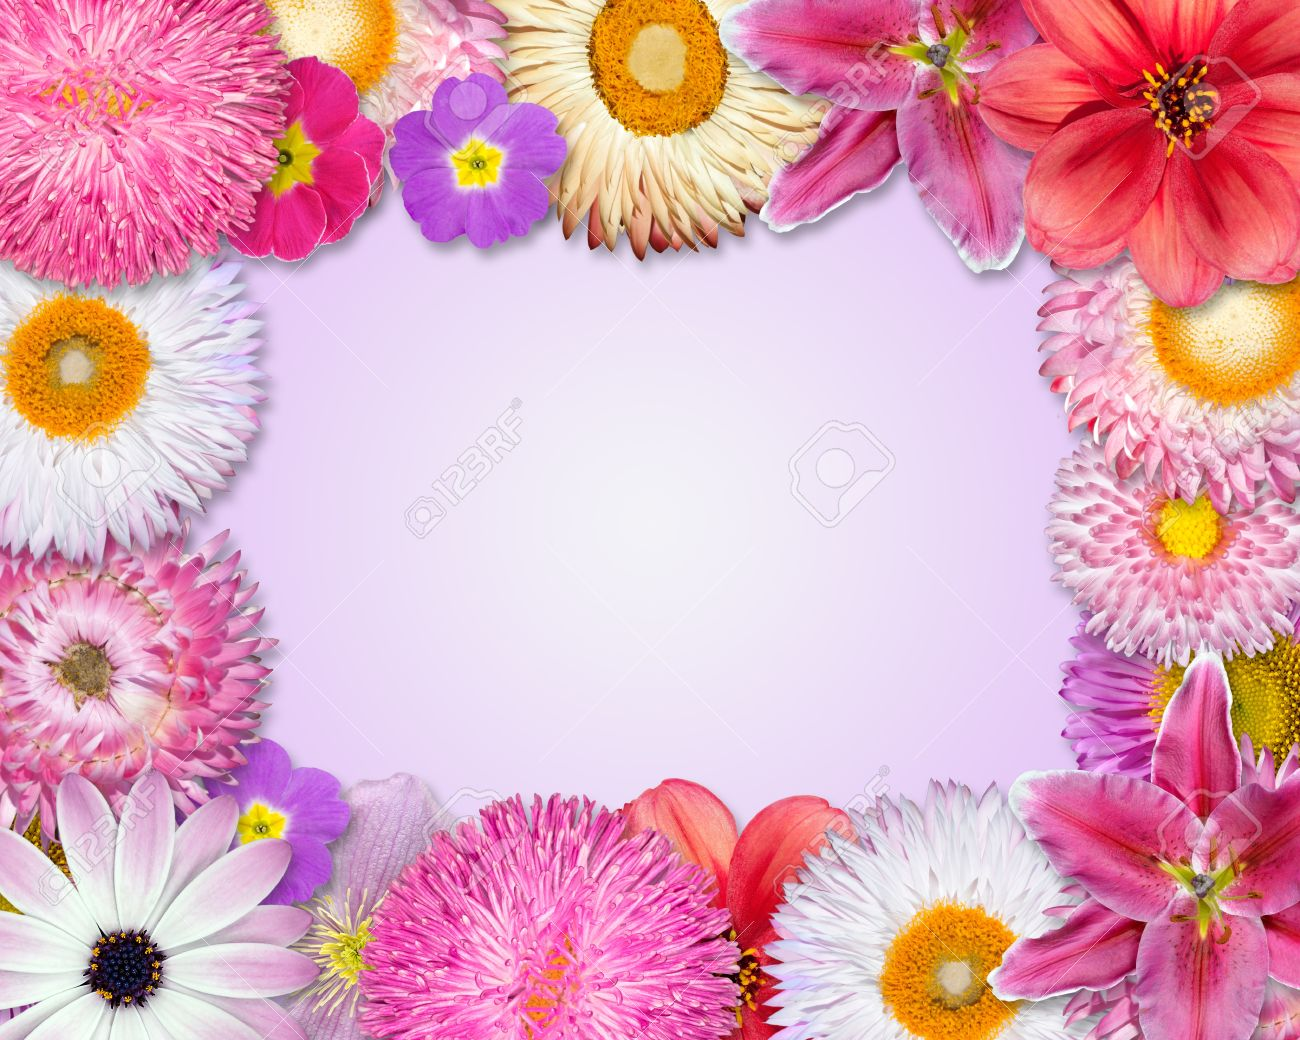 Flower Frame With Pink Purple Red Flowers Isolated On Pink Stock